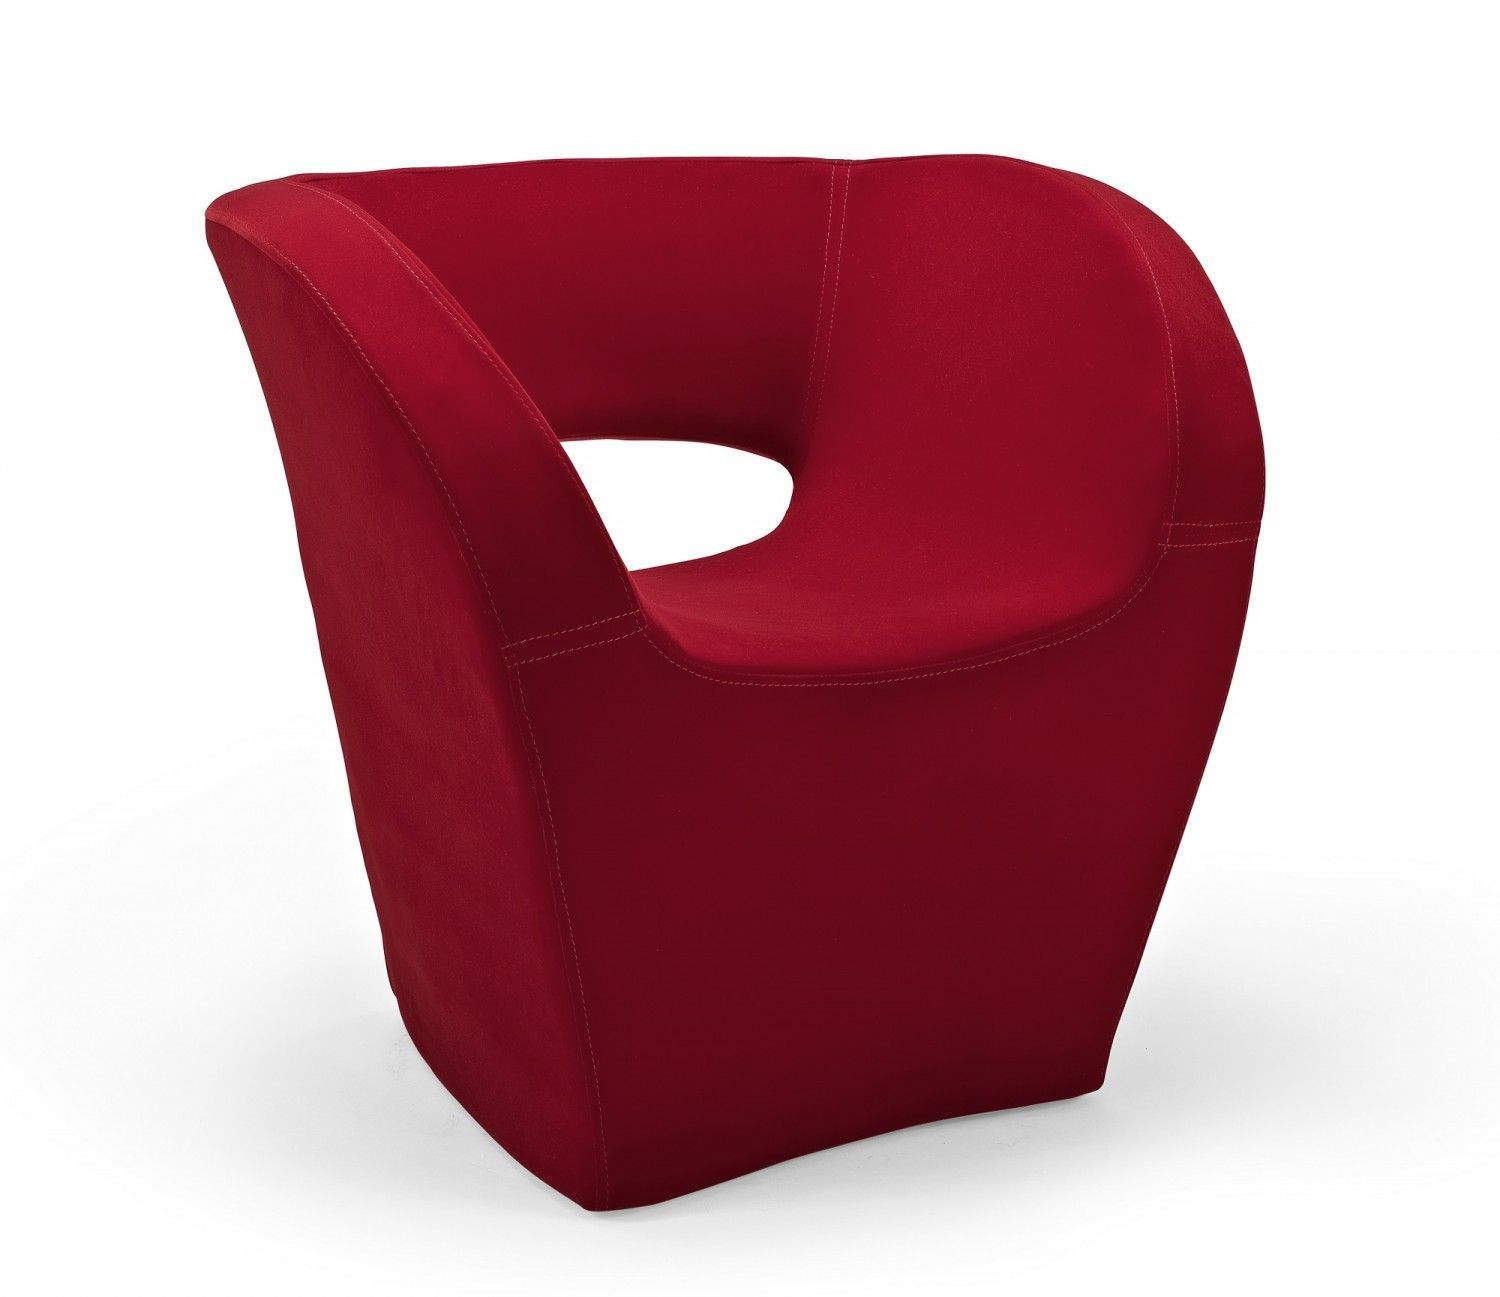 Pin On Chair Ideas